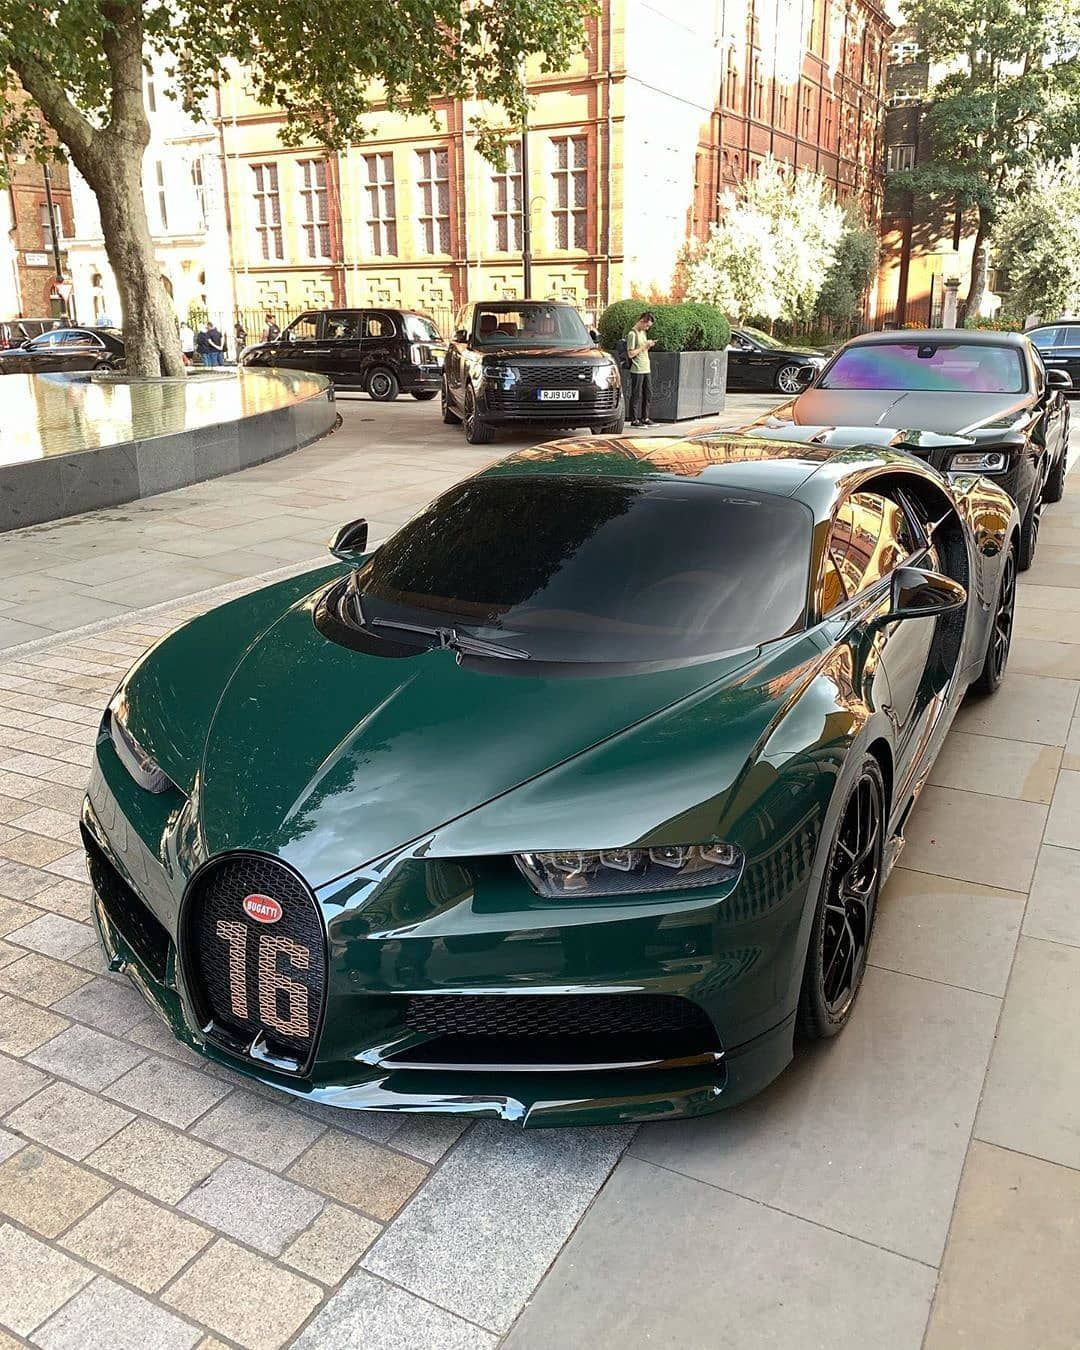 The Green Bugatti Chiron Rate This Chiron 1 10 Pic B Bugatti Chiron Super Cars Sports Cars Luxury